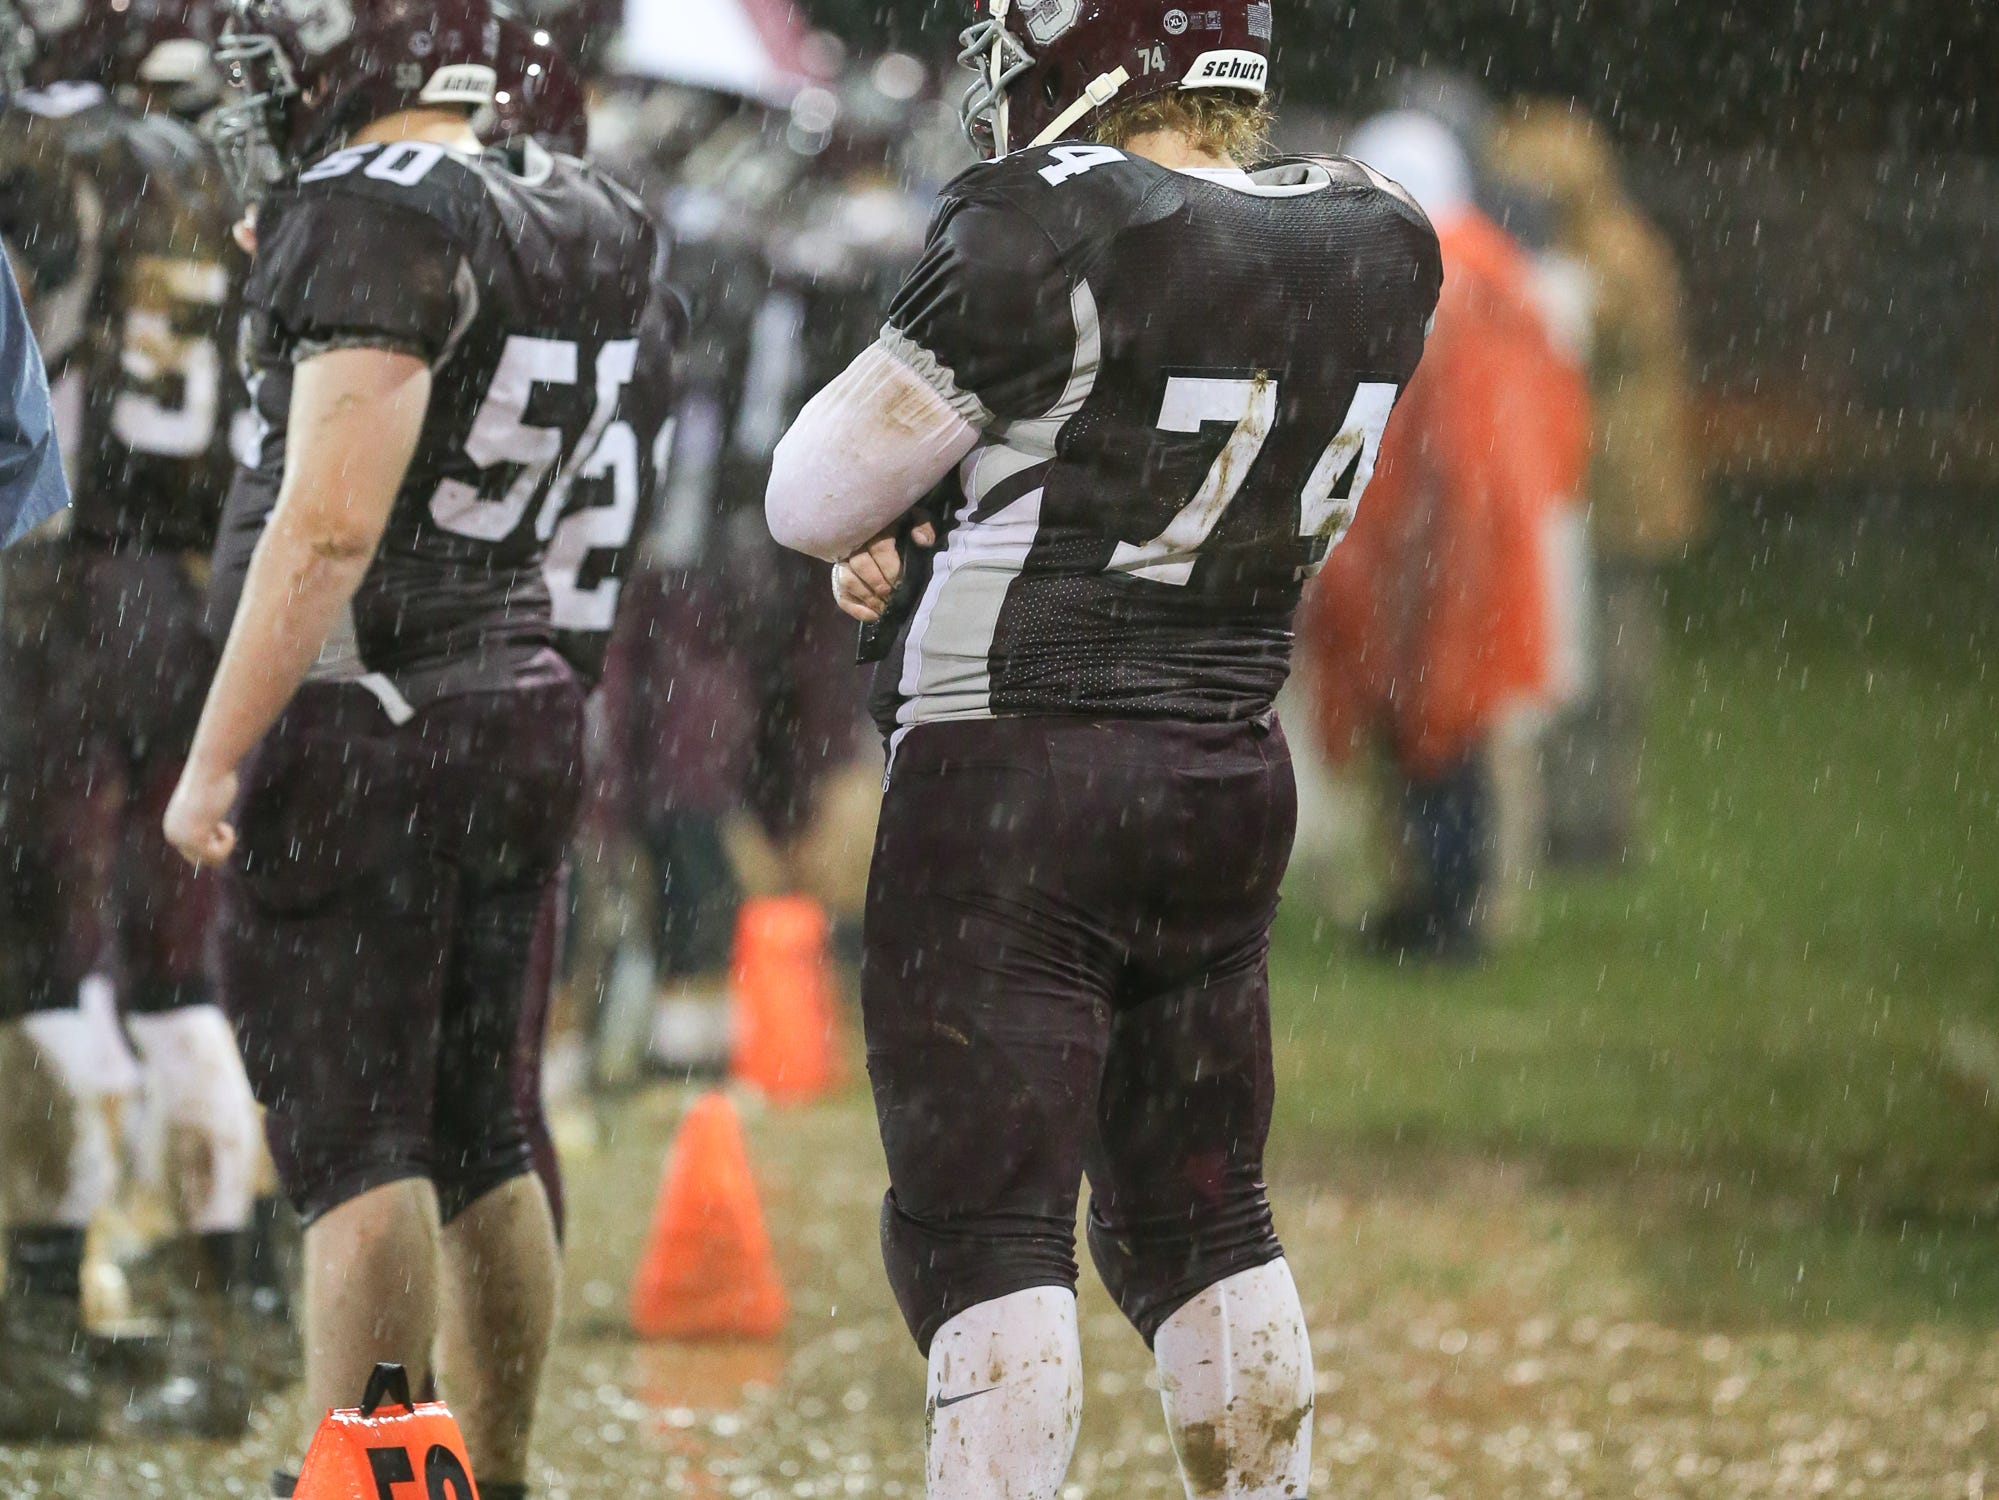 Sophomore Daulton Foore stands on the muddy sideline. The Shippensburg Greyhounds defeated Northeastern 6-0 in a playoff game in Shippensburg on Friday, Nov. 2, 2018.